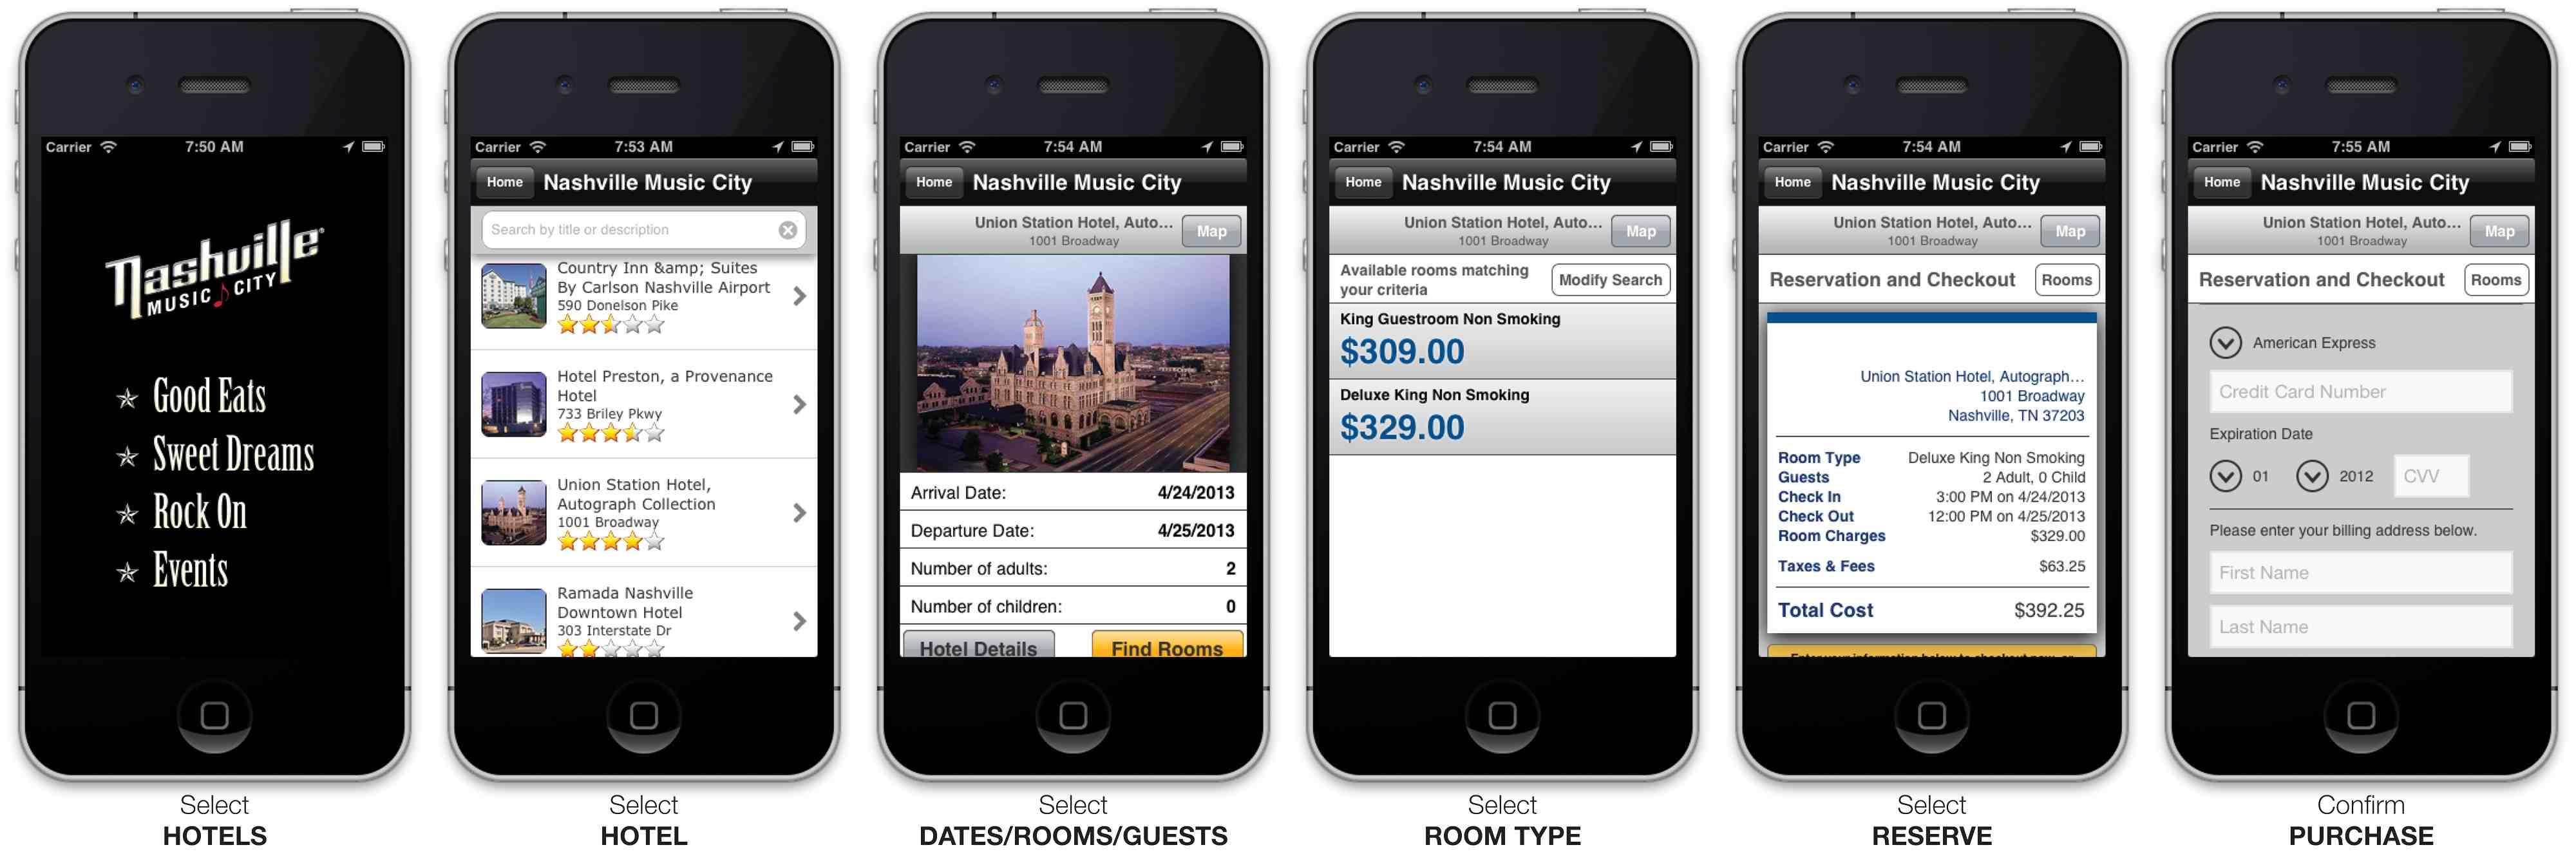 Expedia.co.uk app